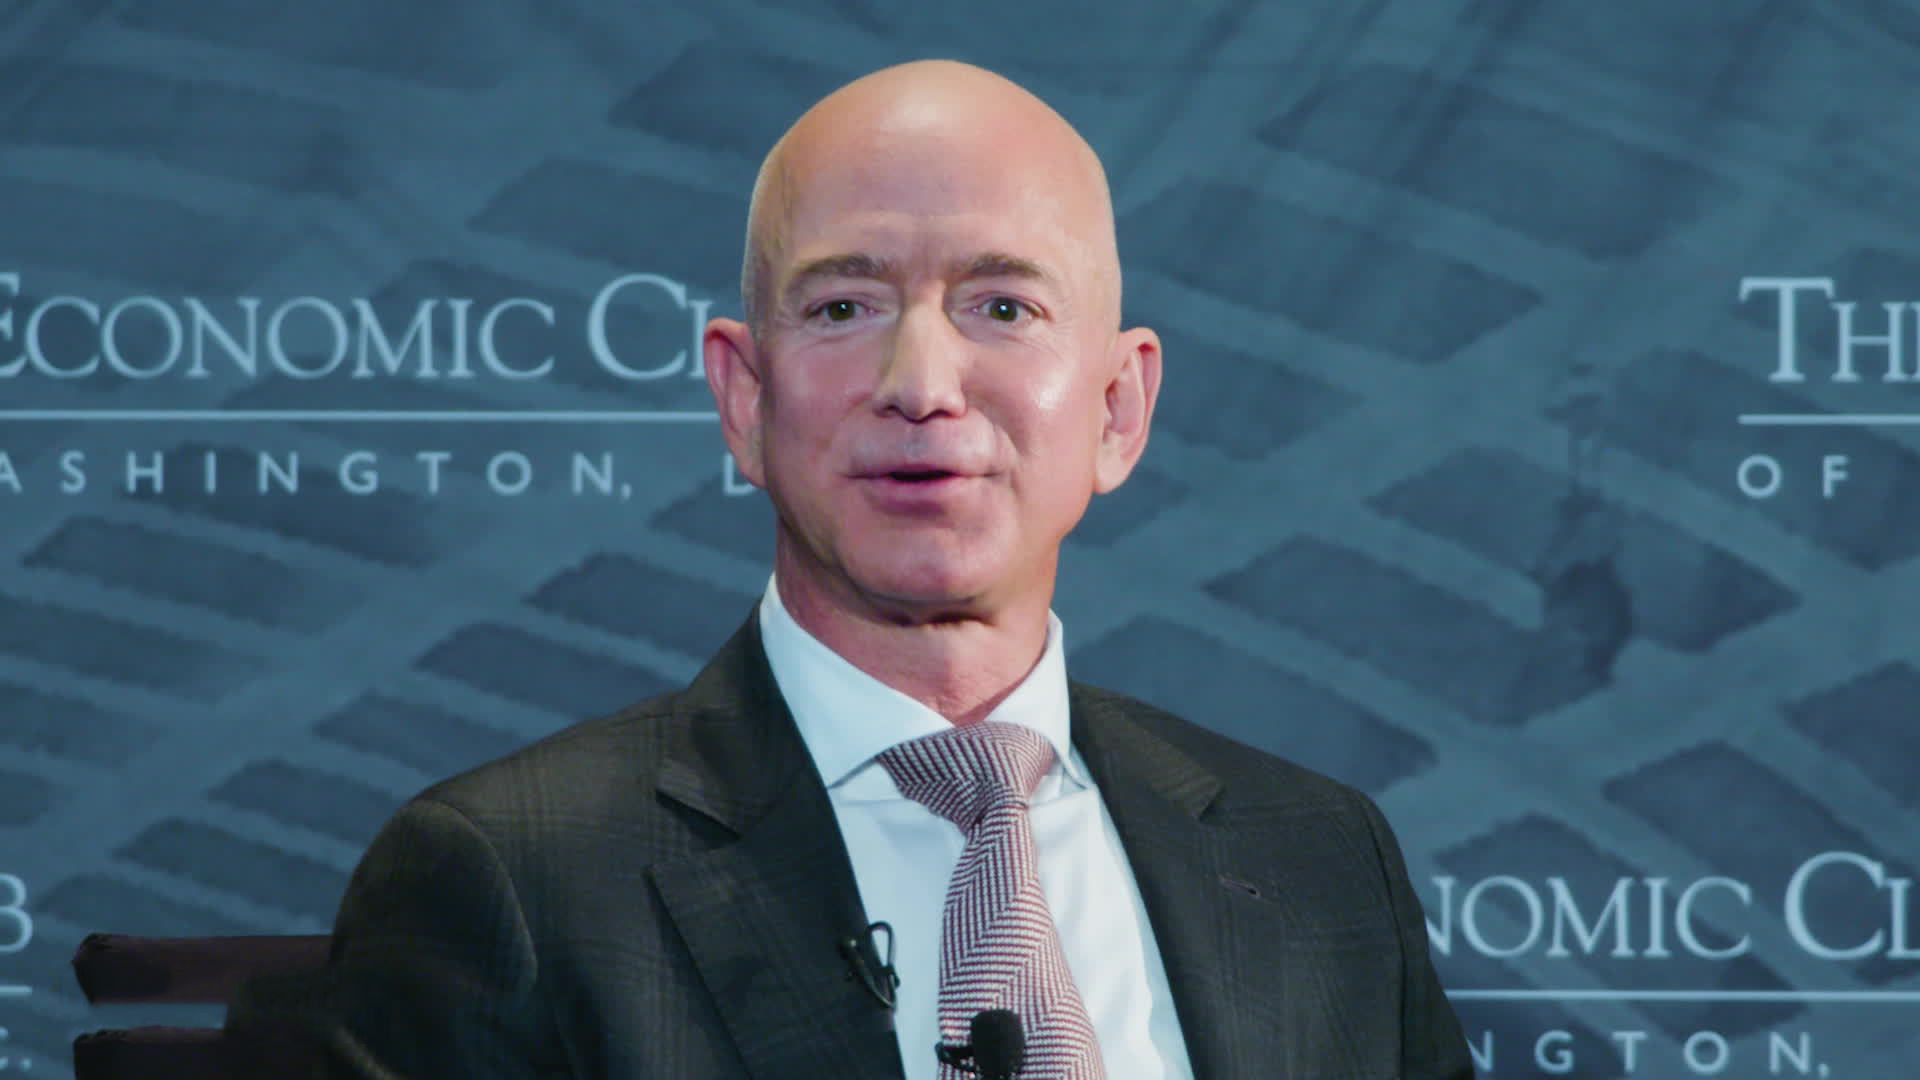 An Immigrant with little English and big American dream: Amazon CEO Jeff Bezos shares father